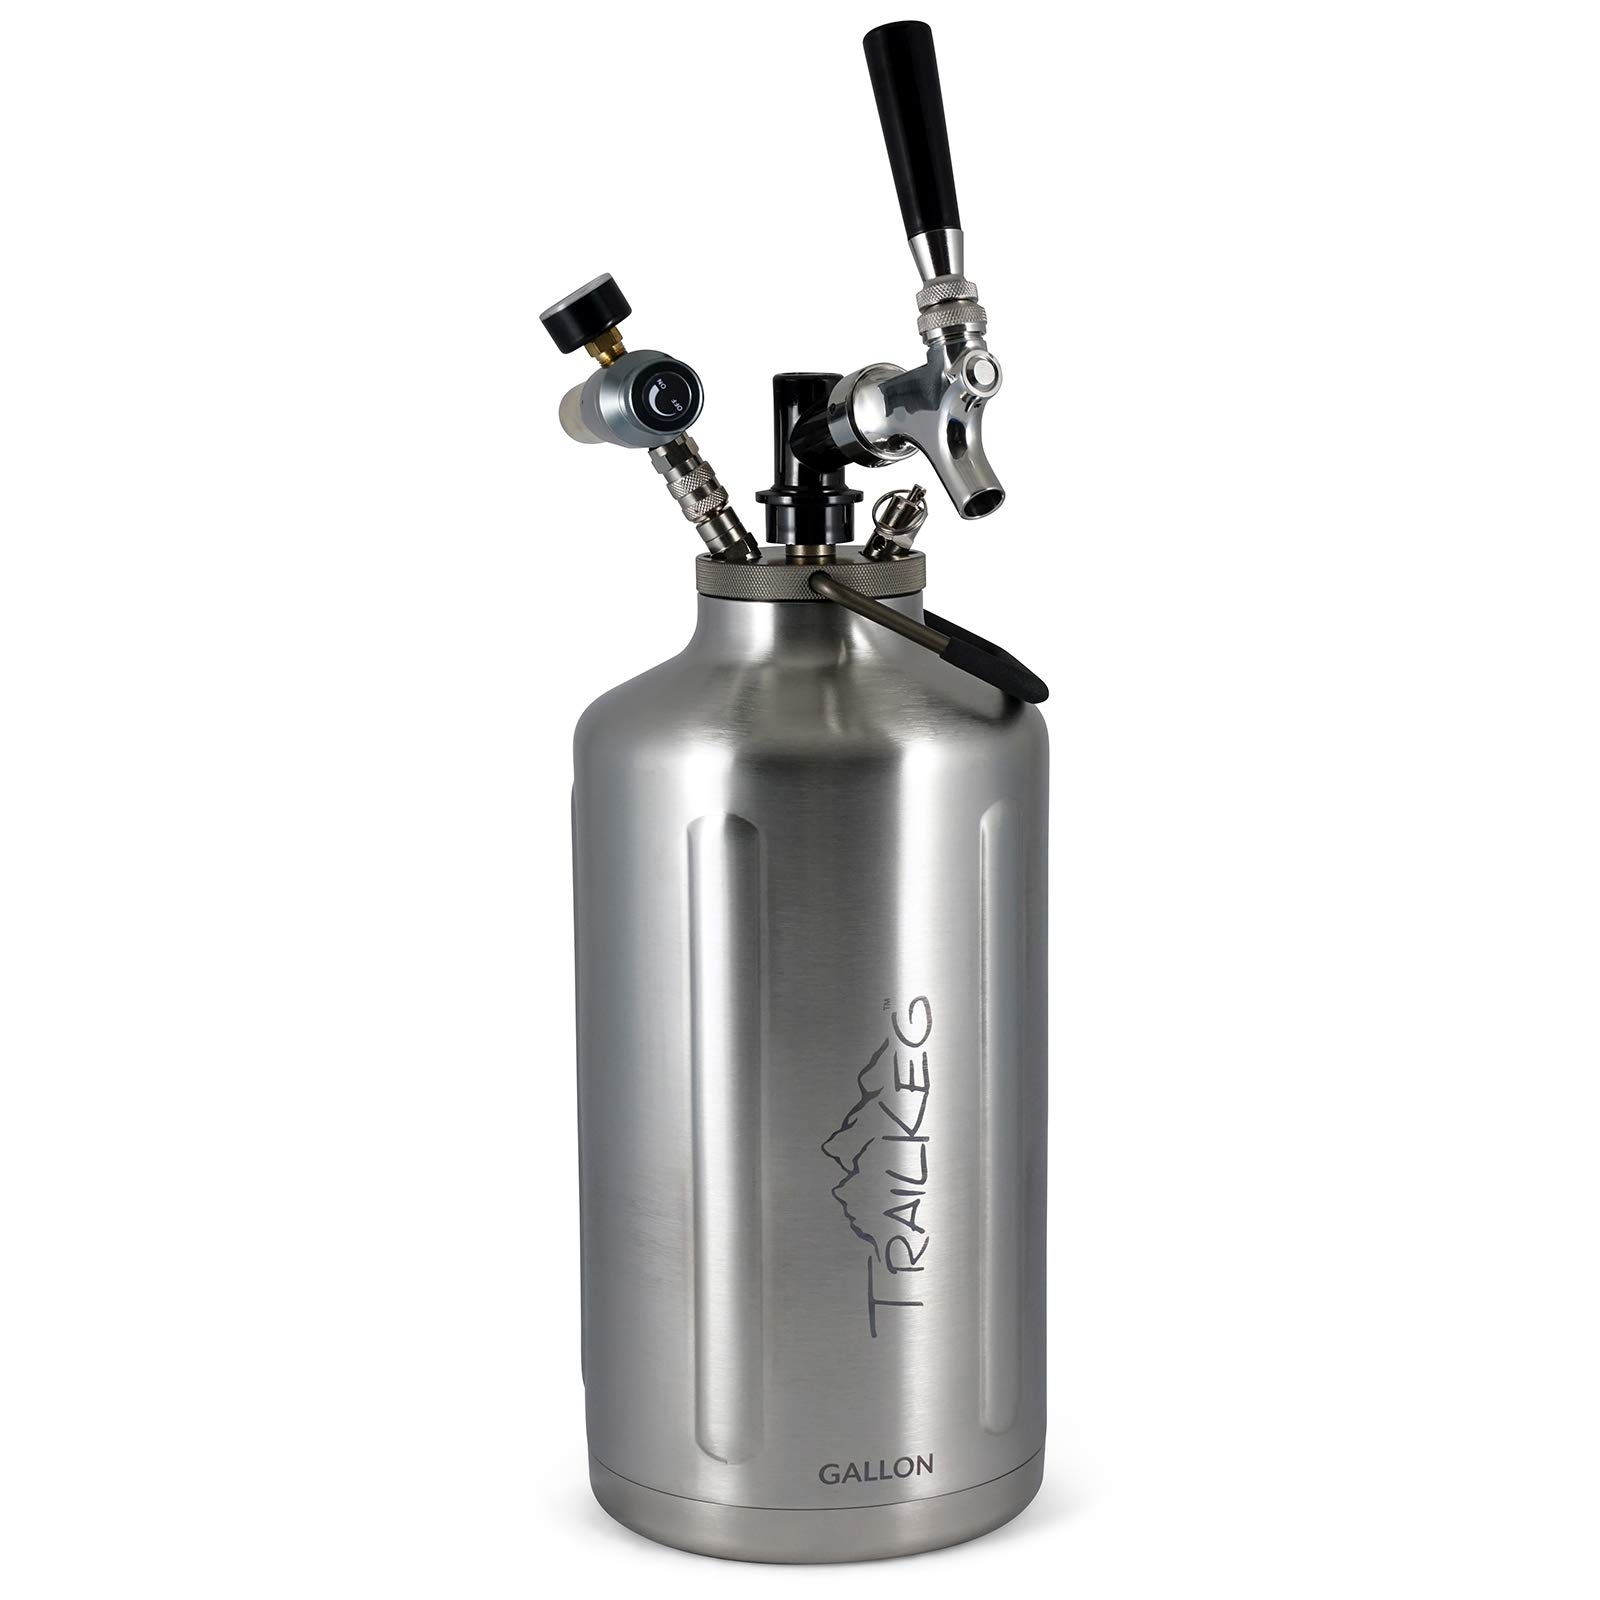 TrailKeg - Gallon Stainless Steel Growler For Beer - Vacuum Insulated Double Wall Design - Chrome Tap And Dual Stage CO2 Regulator - Keeps Drinks Perfectly Cold And Carbonated - Portable And Durable